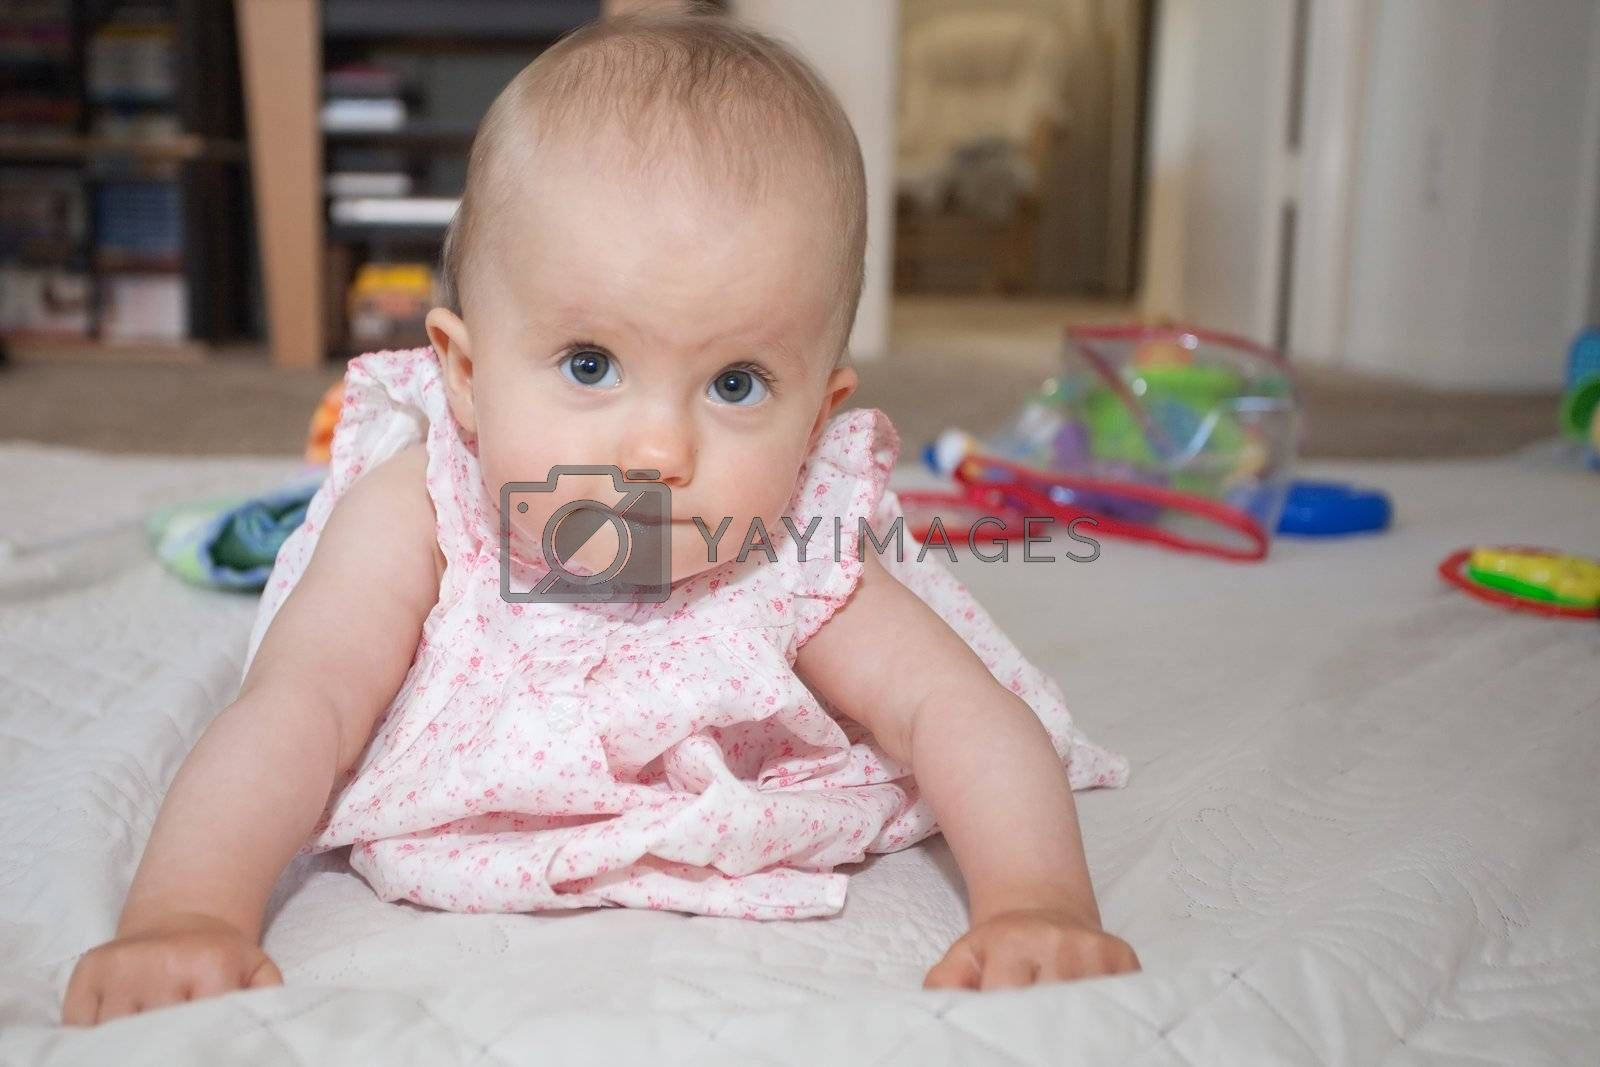 Babies usually learn to crawl before they develop walking skills. For humans it usually means moving on knees and hands, with support from the toes.